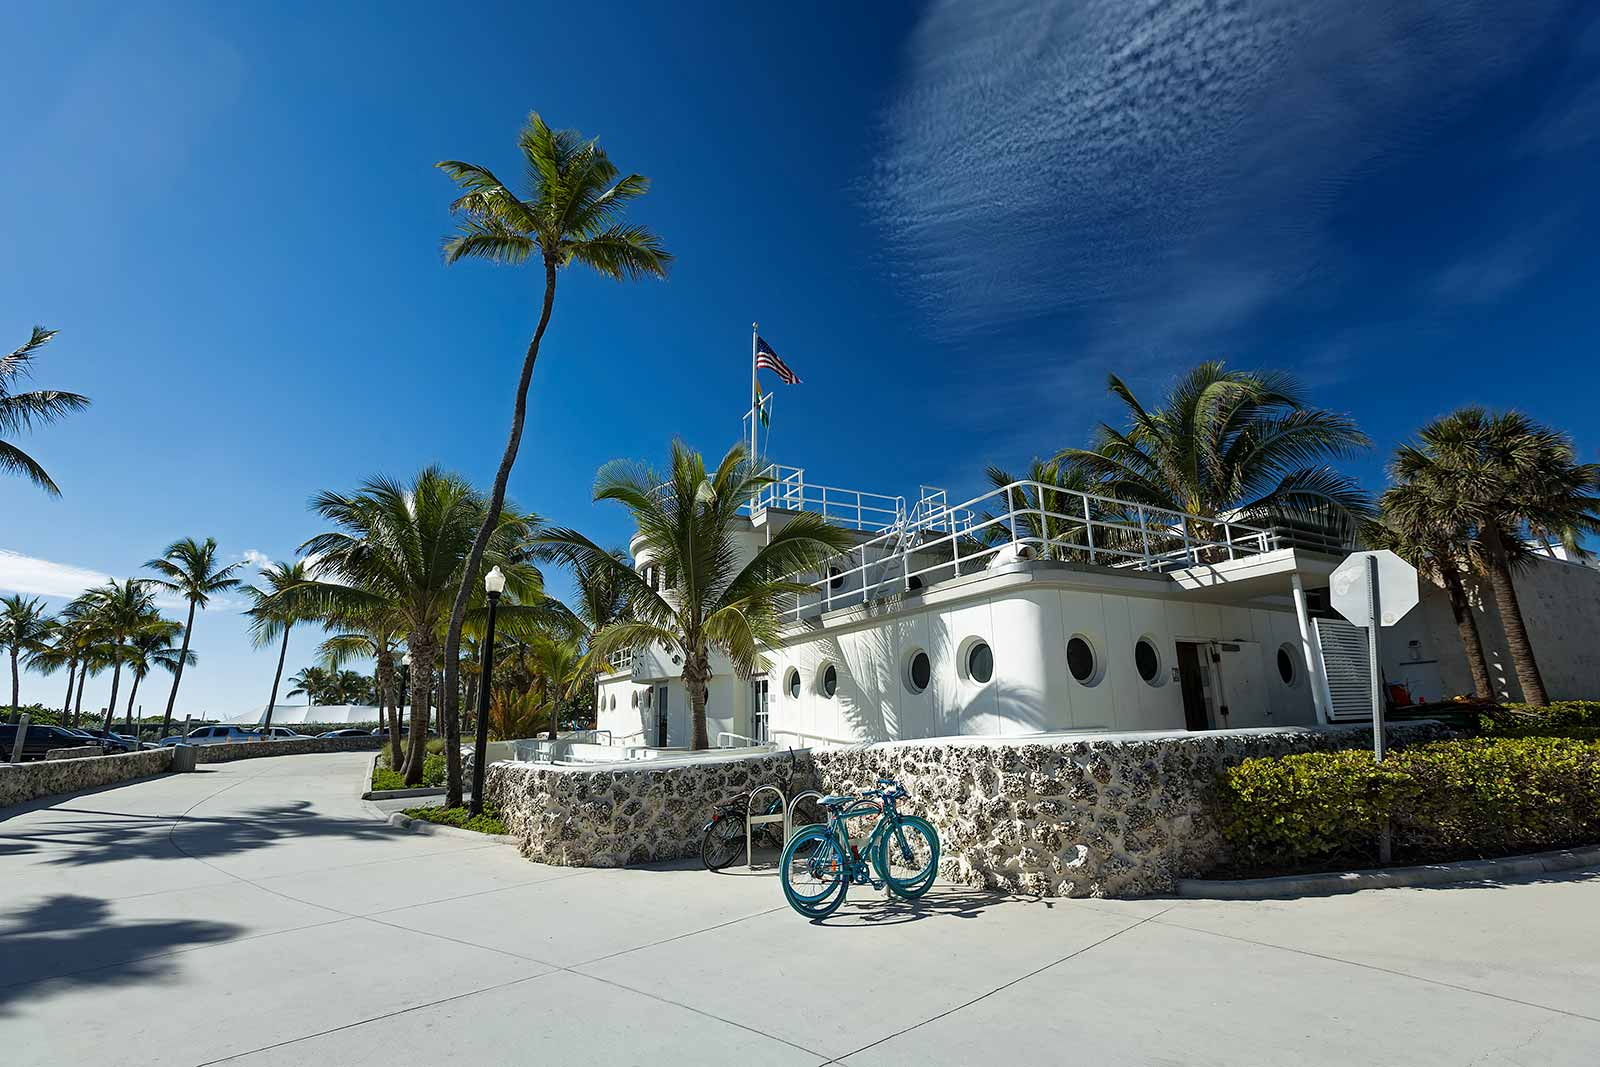 The best way to explore Miami Beach is by bicycle. A Citi Bike card is all you need to get around the area.